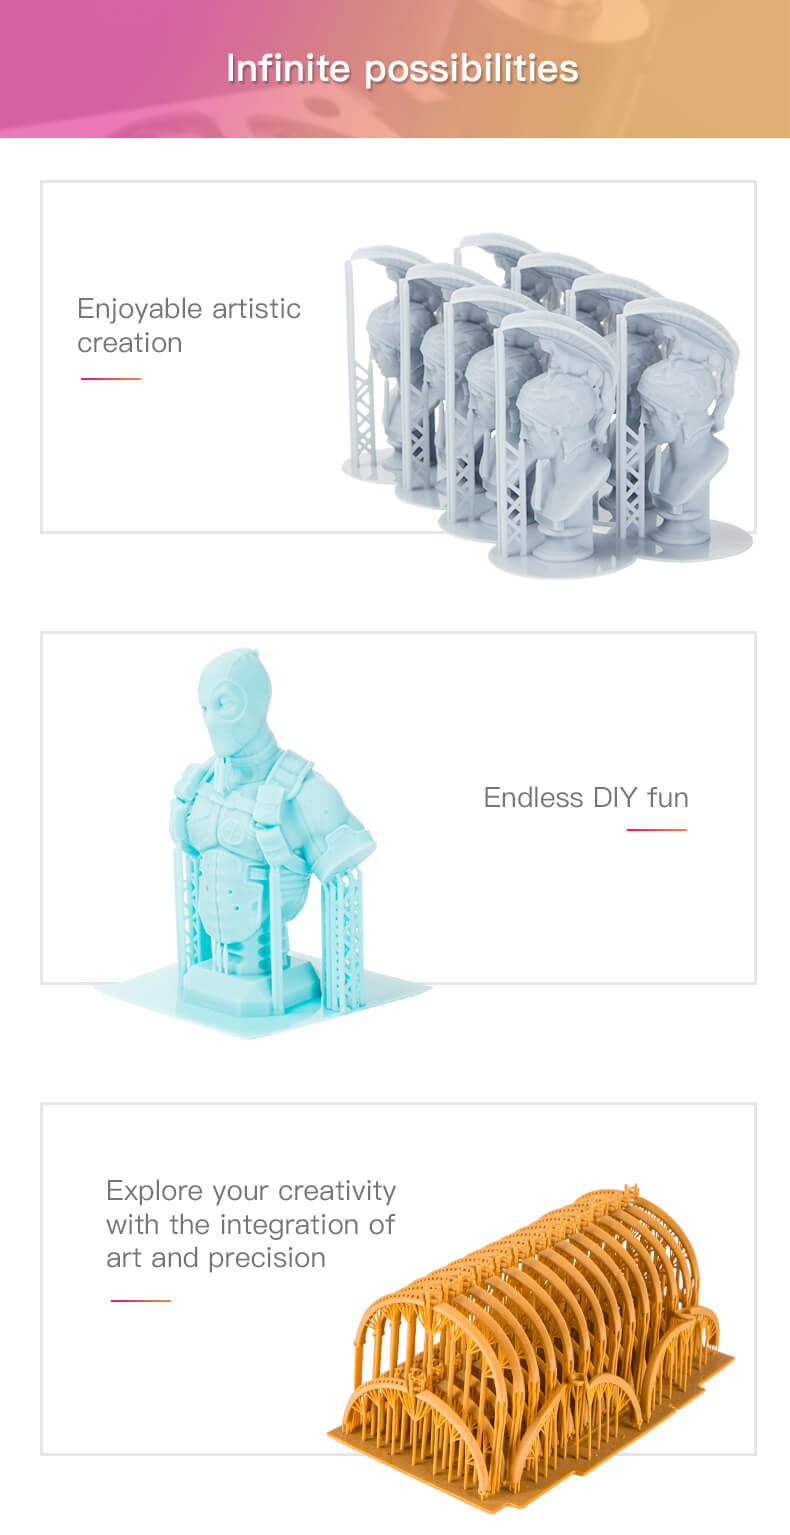 As a result, the LD-002R Resin is a quality 3D printer that is easy to assemble, reliable, and affordable. This makes it a popular option that has a large amount of consumers.